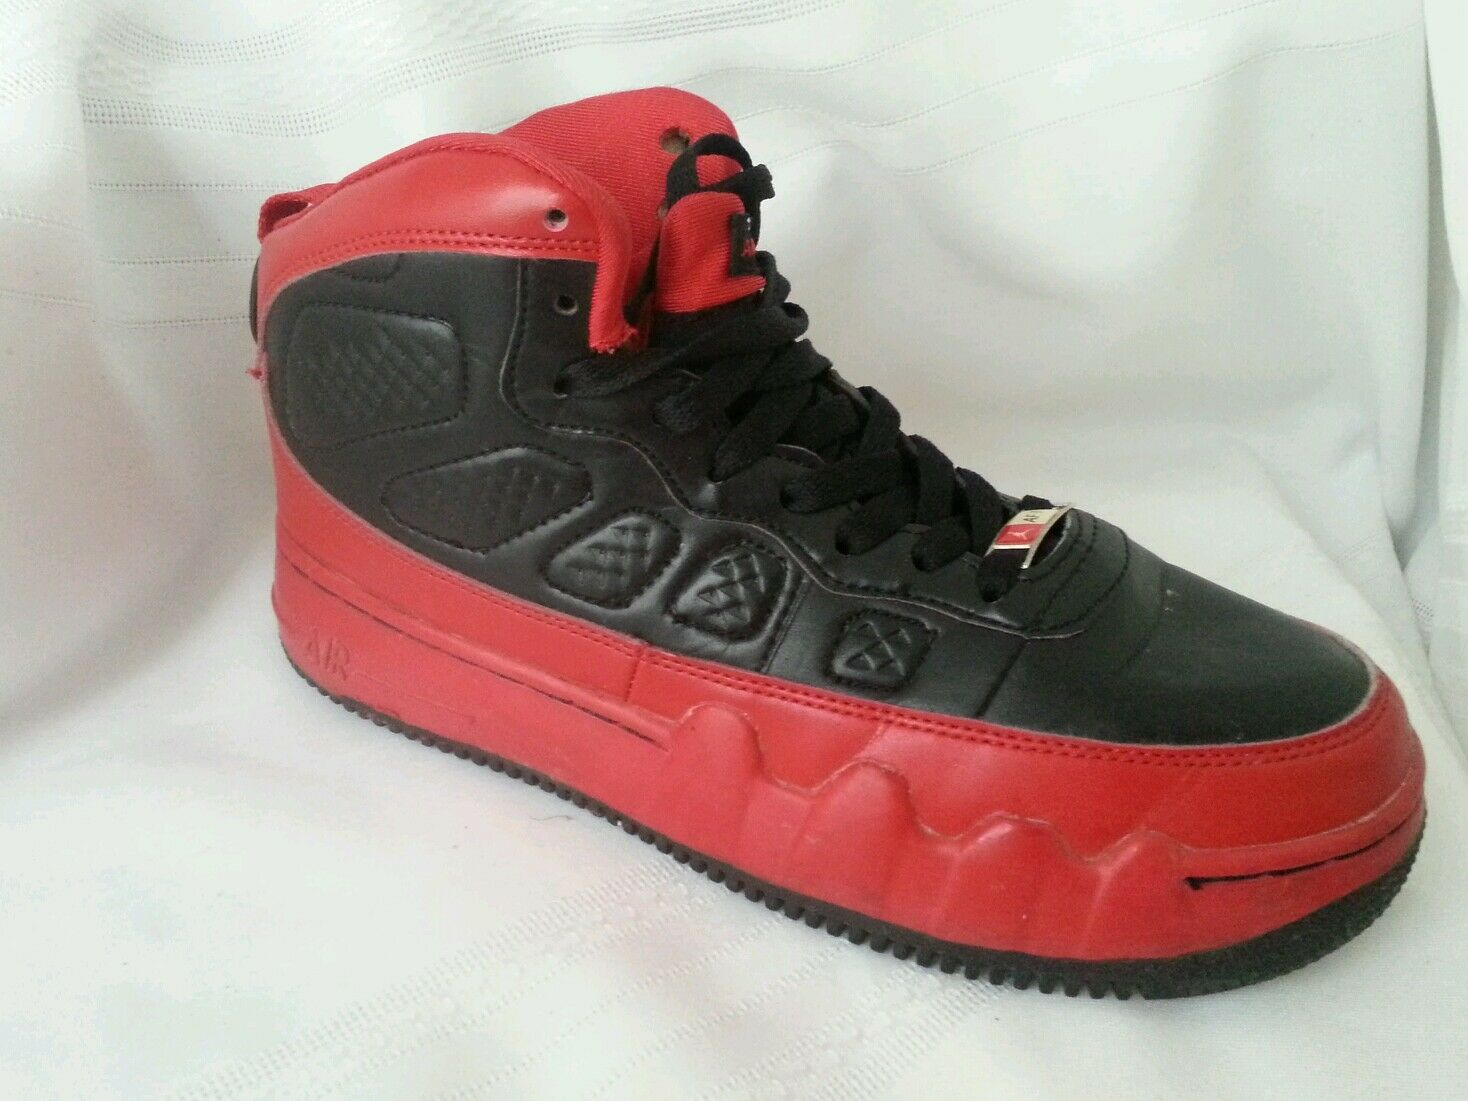 NIKE AIR JORDAN men's basketball shoes size 6.5 black/red great condition! The most popular shoes for men and women